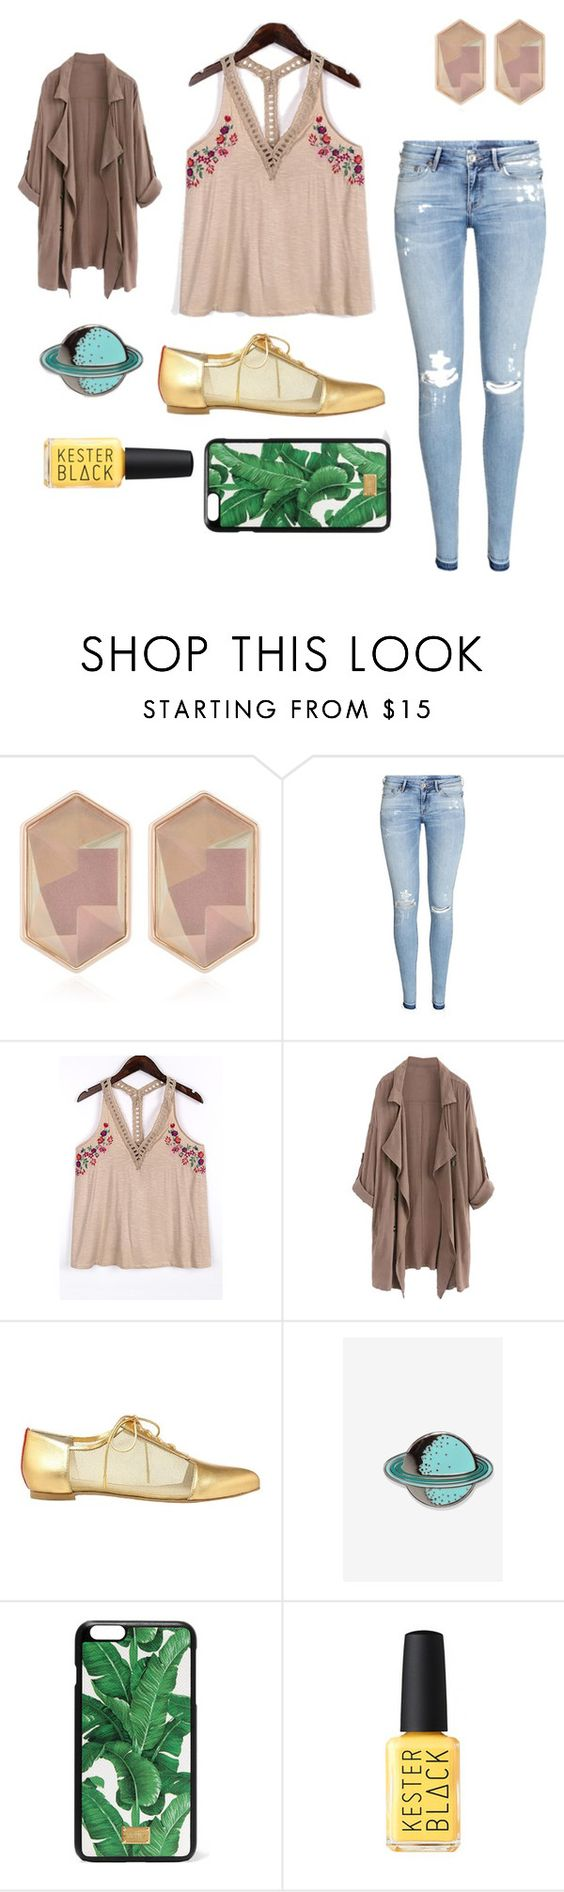 """In The Nude"" by dancingbulldog ❤ liked on Polyvore featuring Nocturne, H&M, Alepel, Big Bud Press, Dolce&Gabbana and Kester Black"